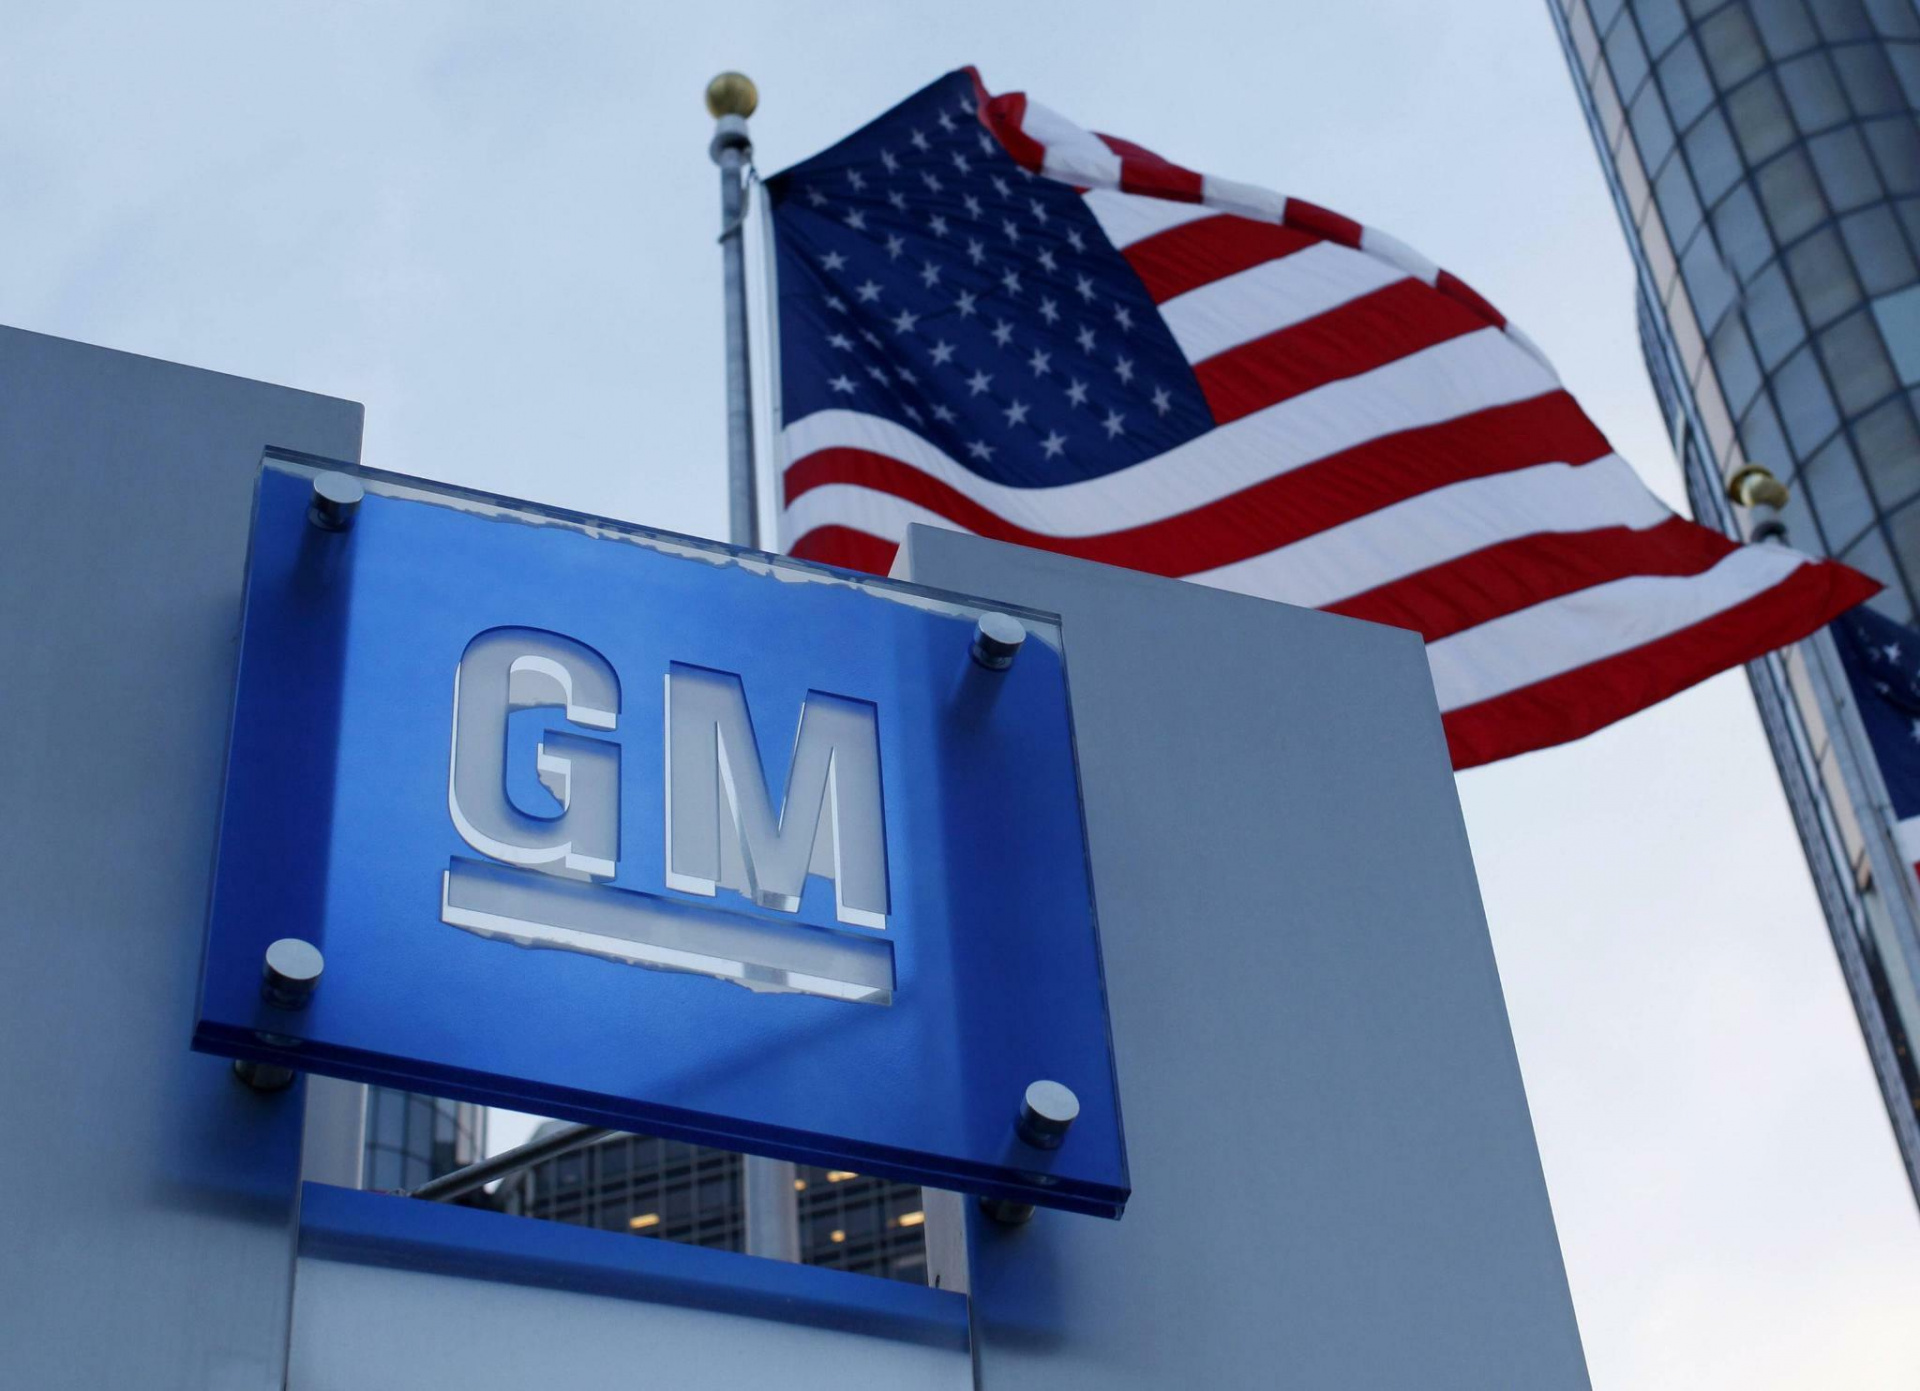 GM Announced U.S. Production Halt Blaming Microchip Shortage. Is it Just a Good Excuse?